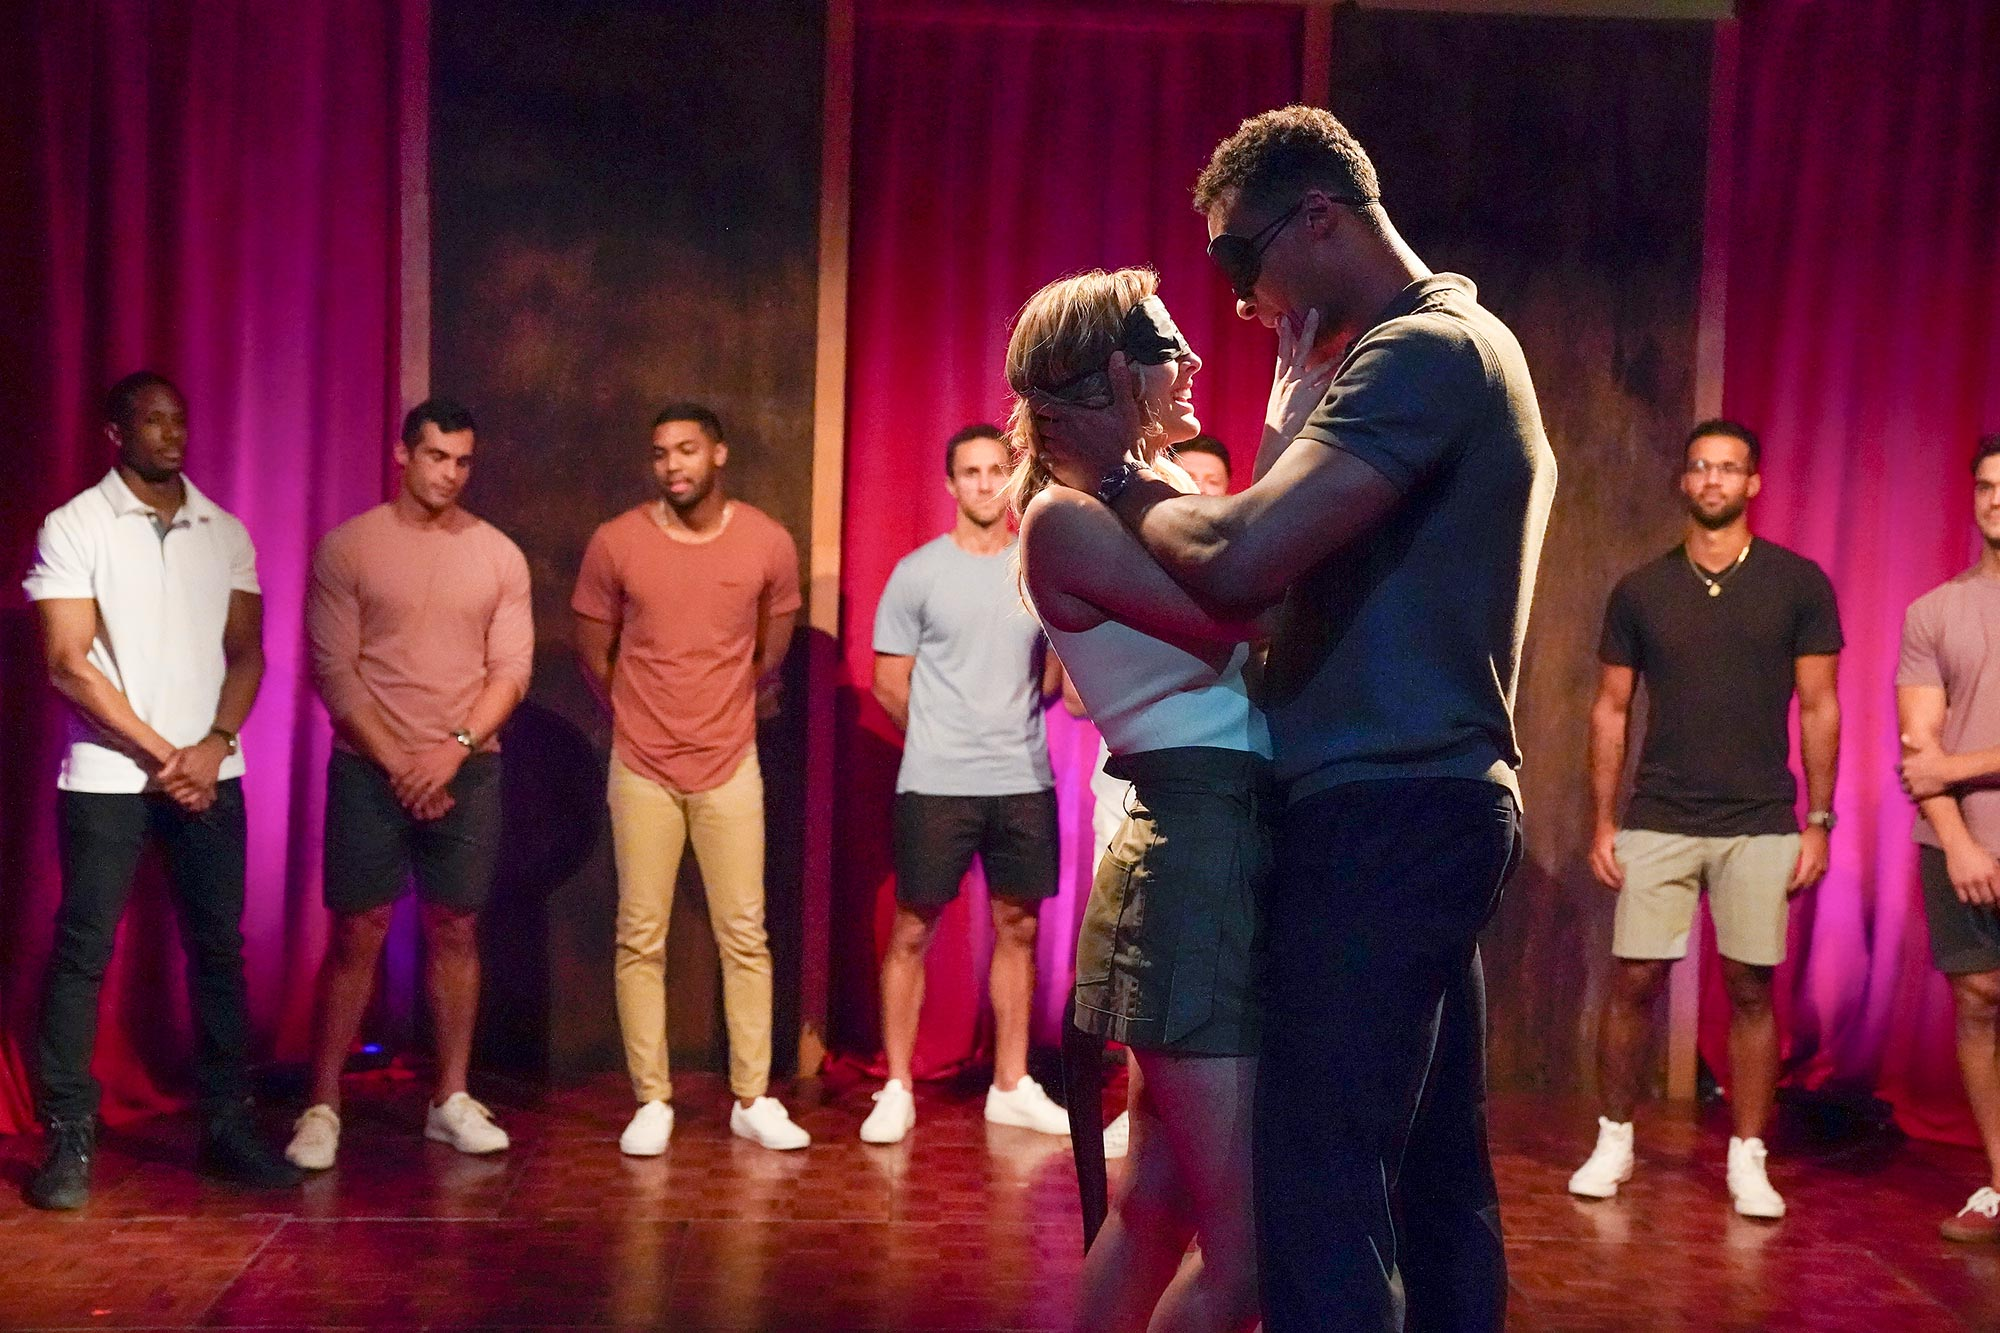 The Bachelorette season 16, episode 2 recap: Love language barrier | EW.com